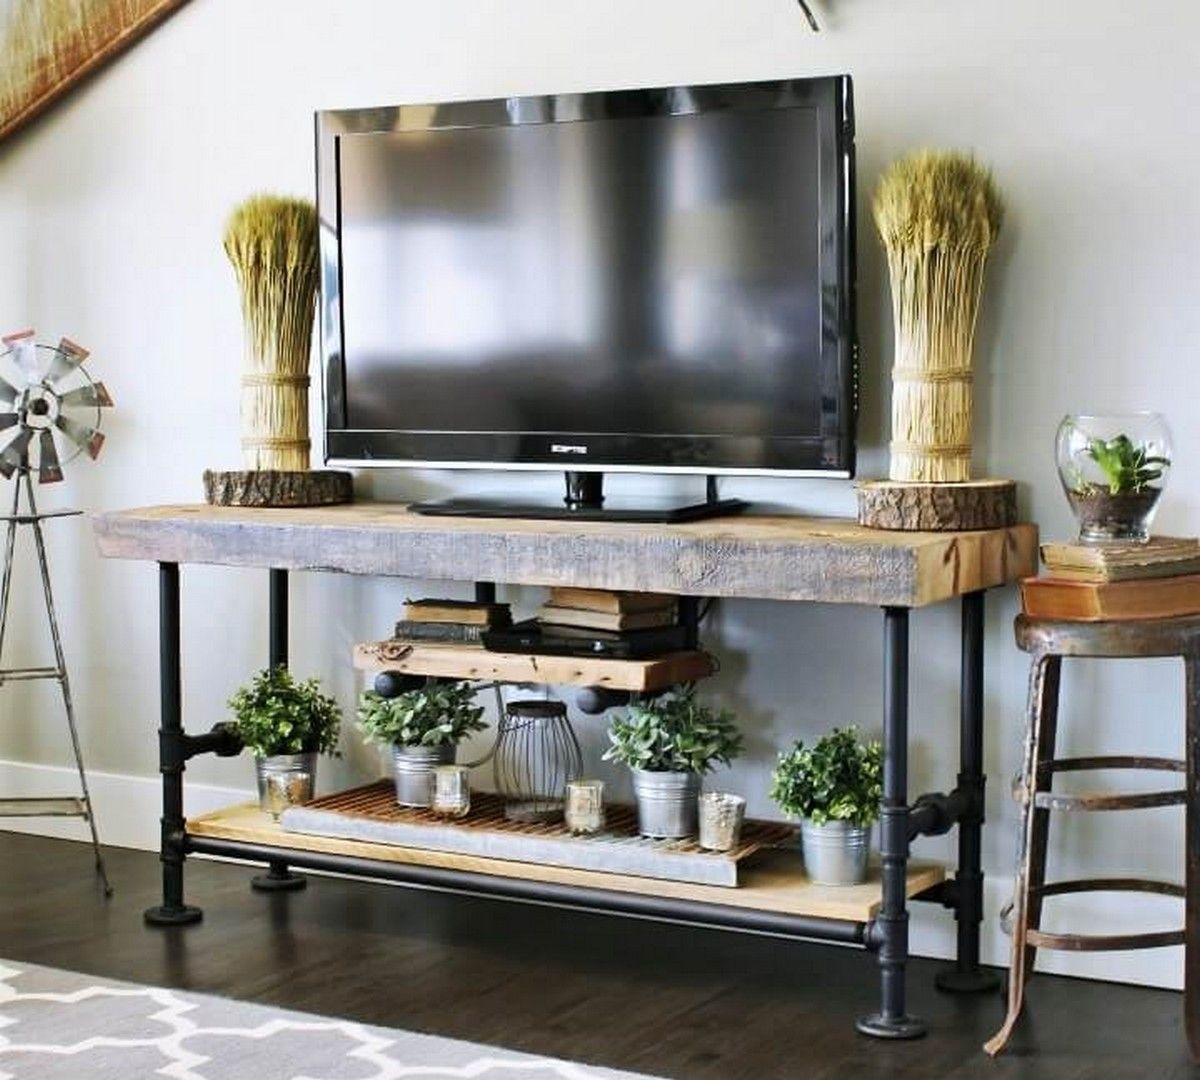 20 Farmhouse Style Tv Console Ideas Goodnewsarchitecture Farmhouse Tv Console Diy Tv Stand Farmhouse Tv Stand